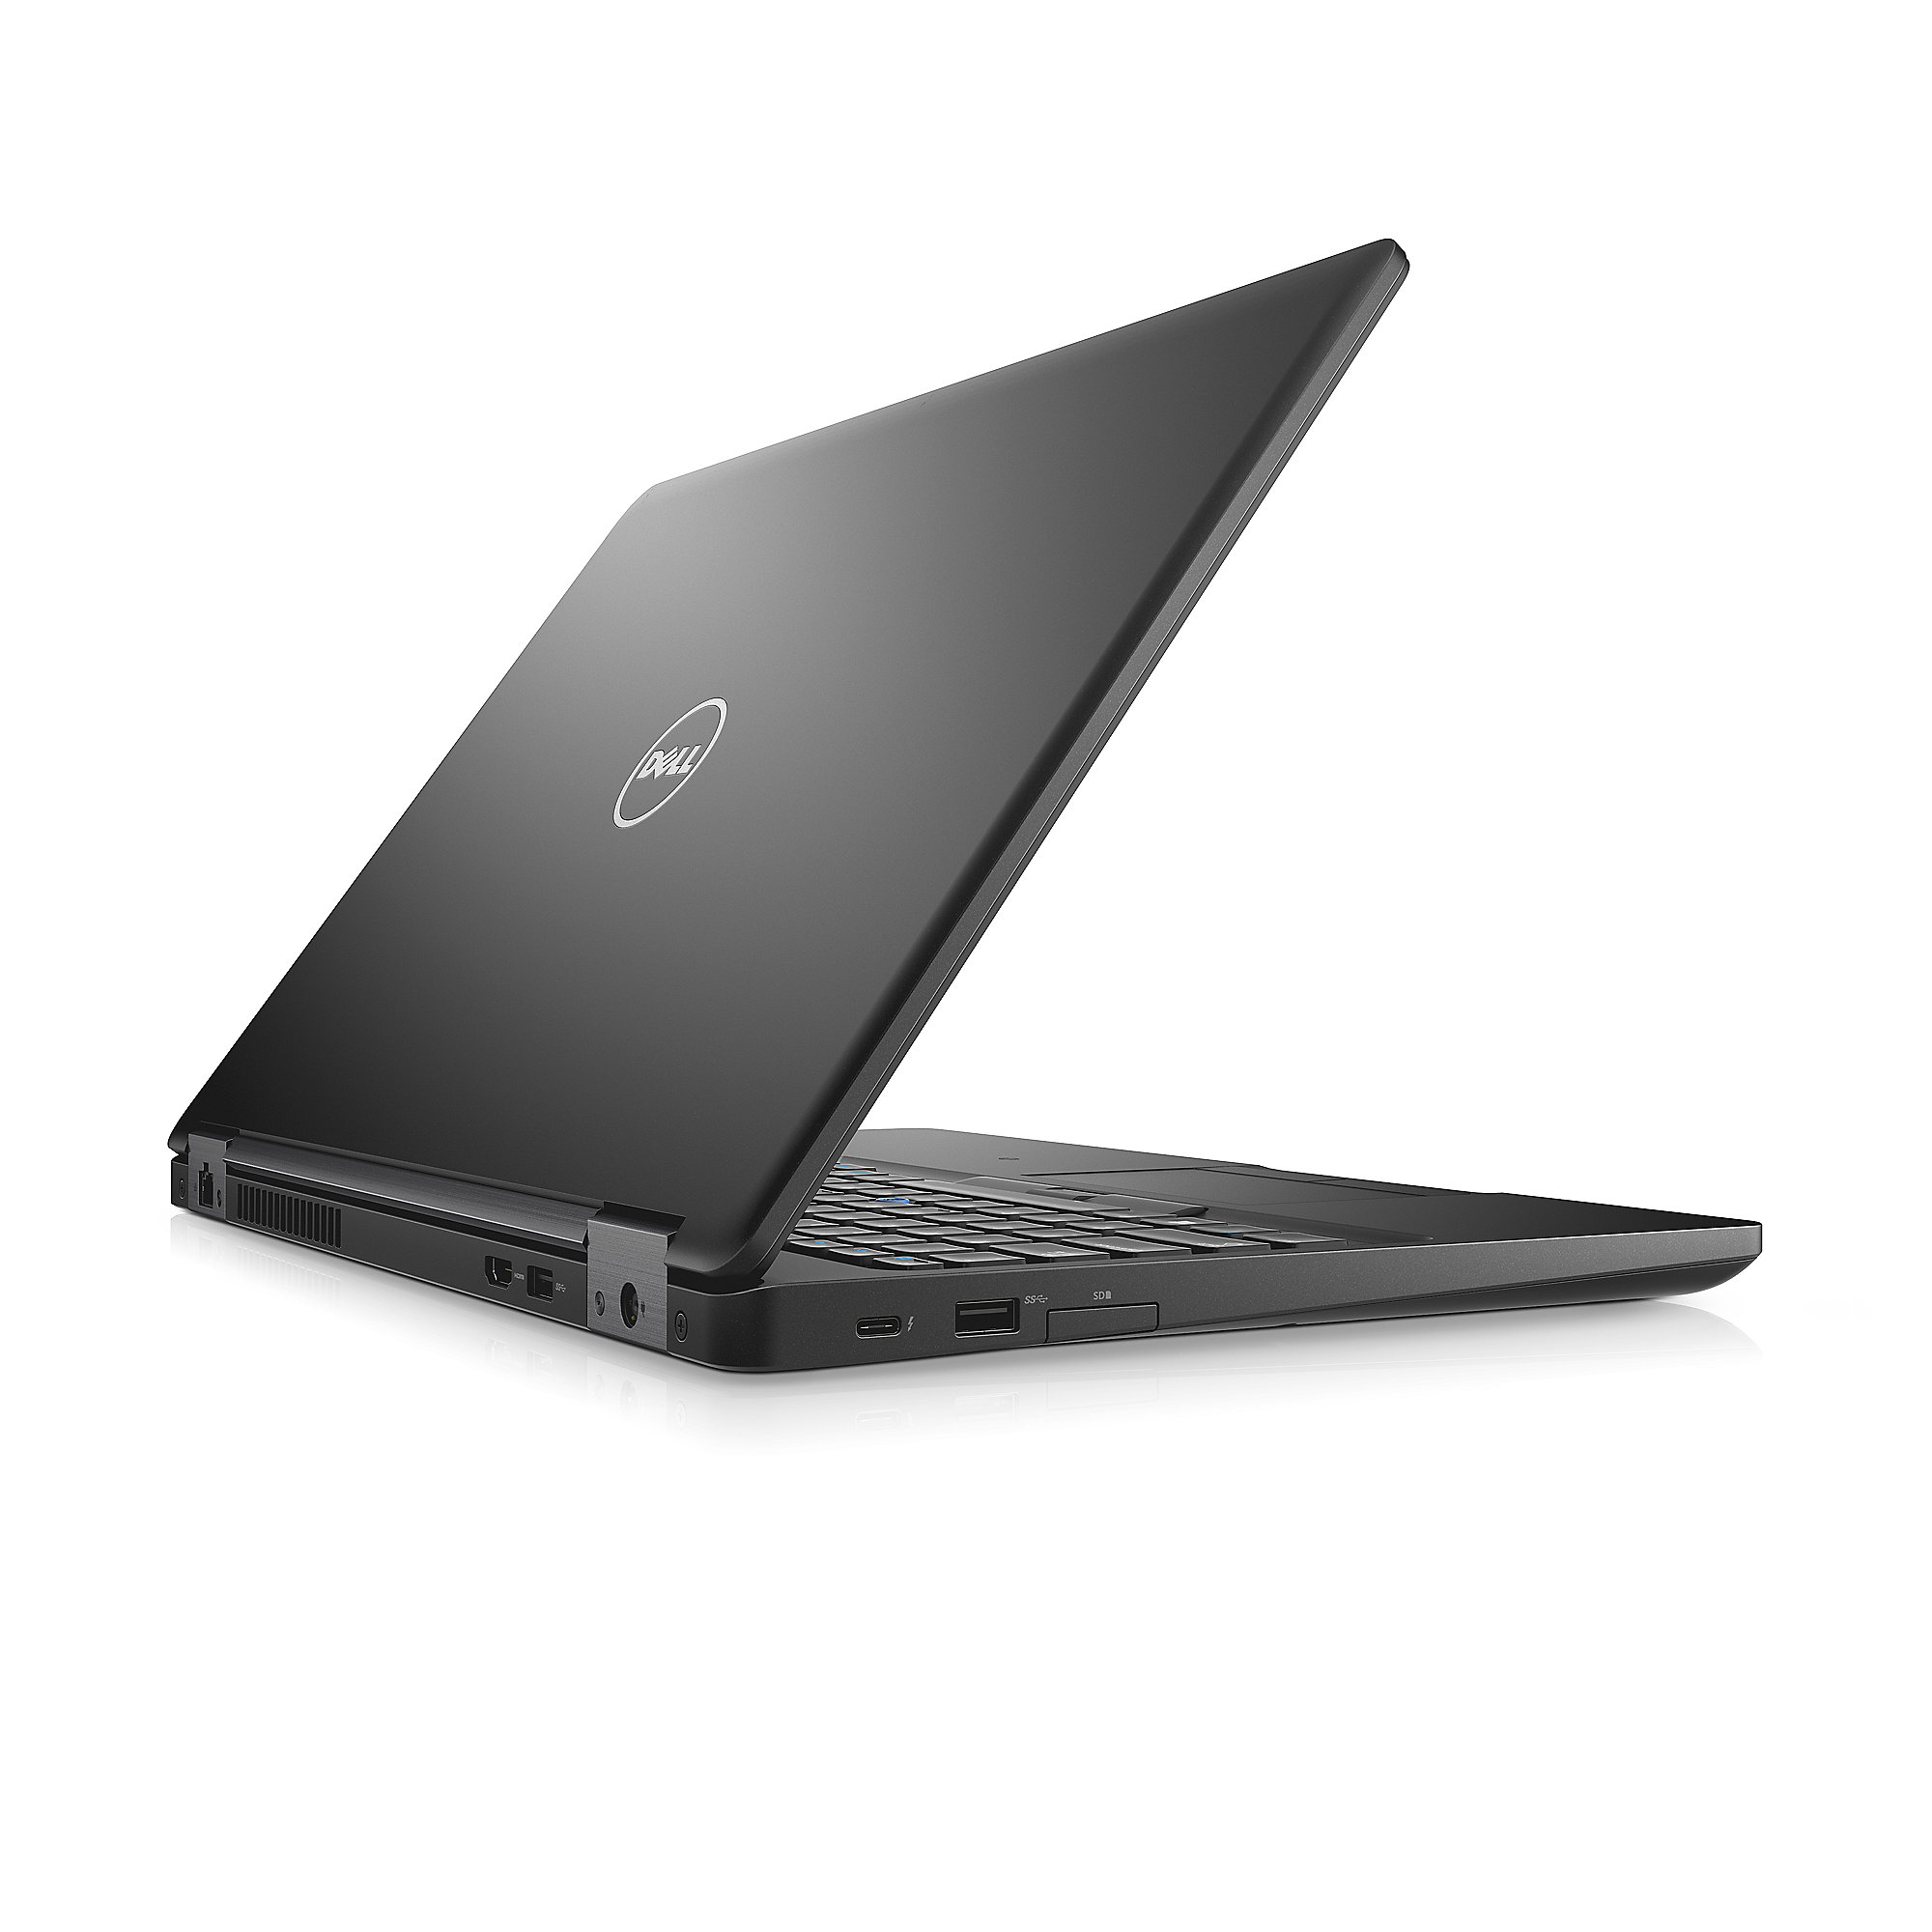 "DELL Latitude 5580 - i5-7440HQ 8GB/256GB SSD 15""FHD Intel HD 630 WLAN + BT W10P"